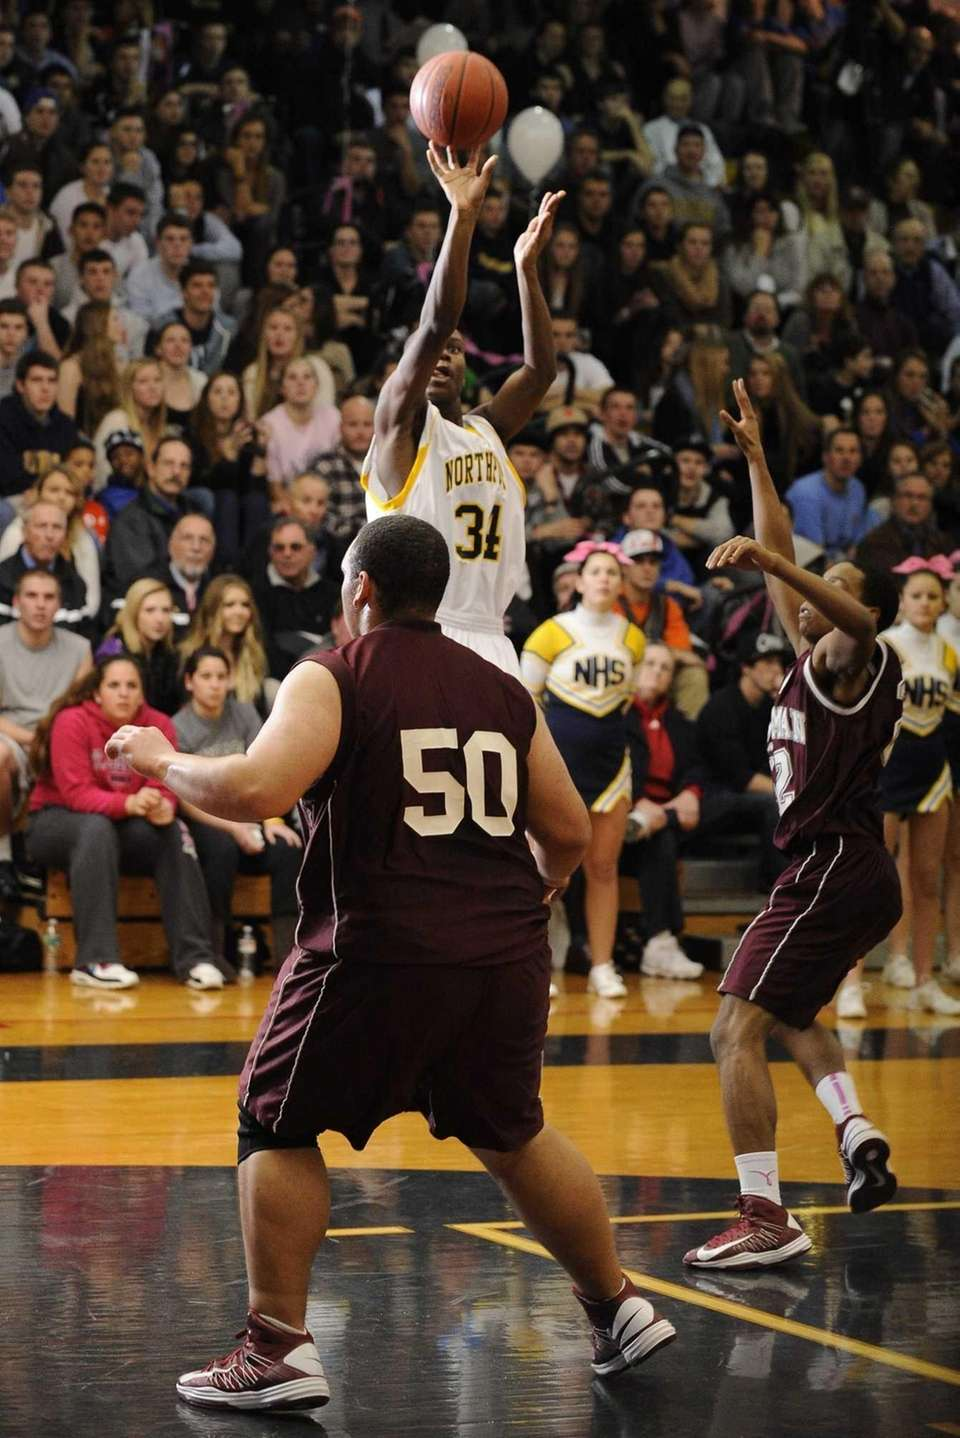 Northport's Michael Milligan Jr. shoots and scores during